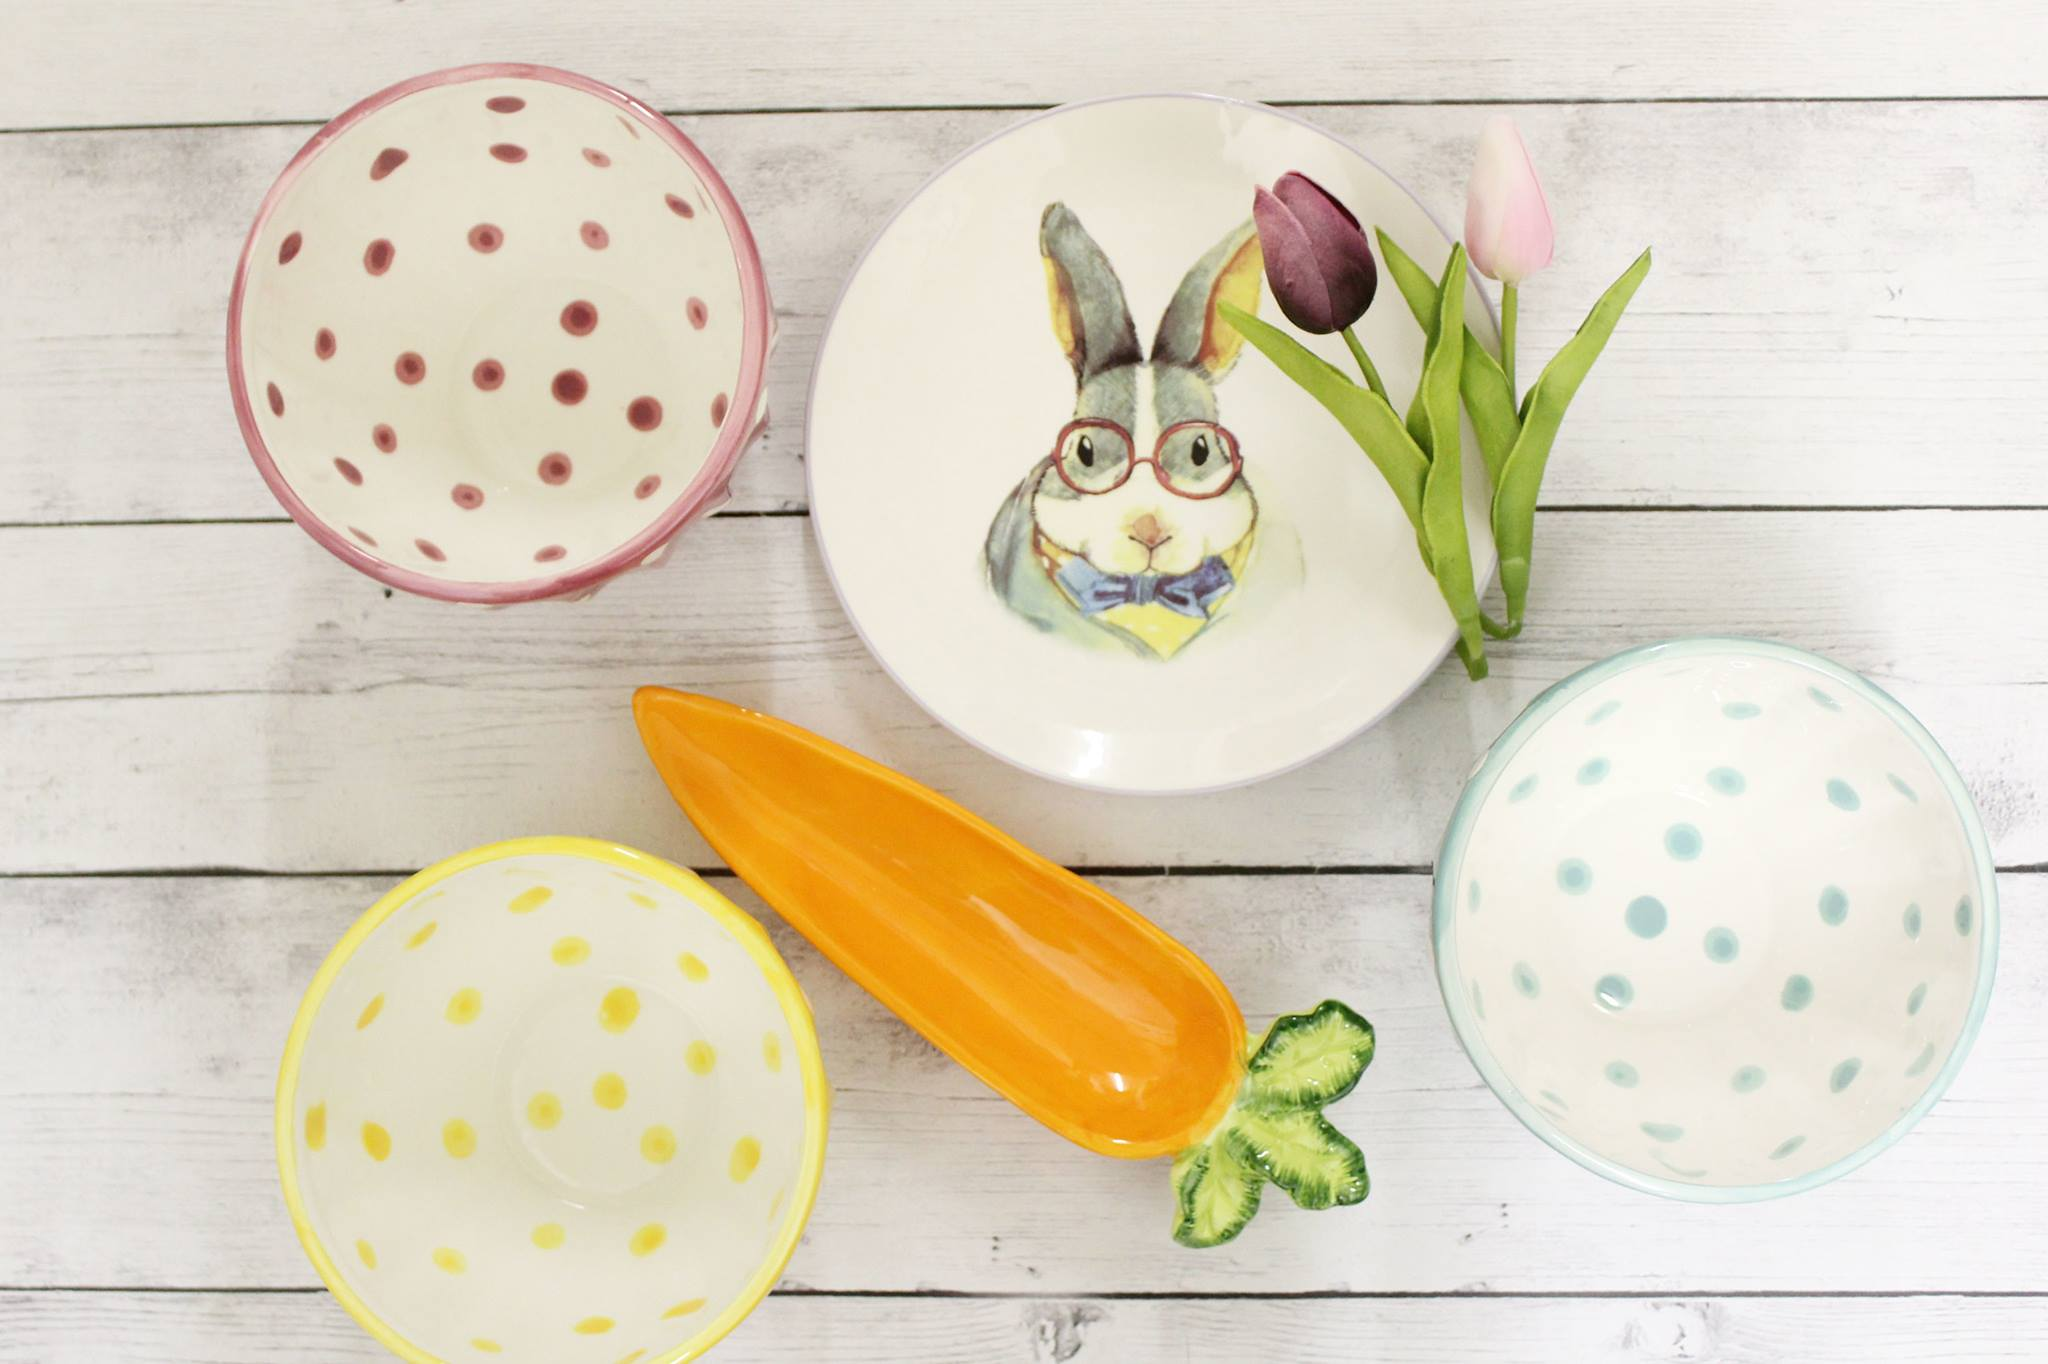 Easter decor, dishes, plates